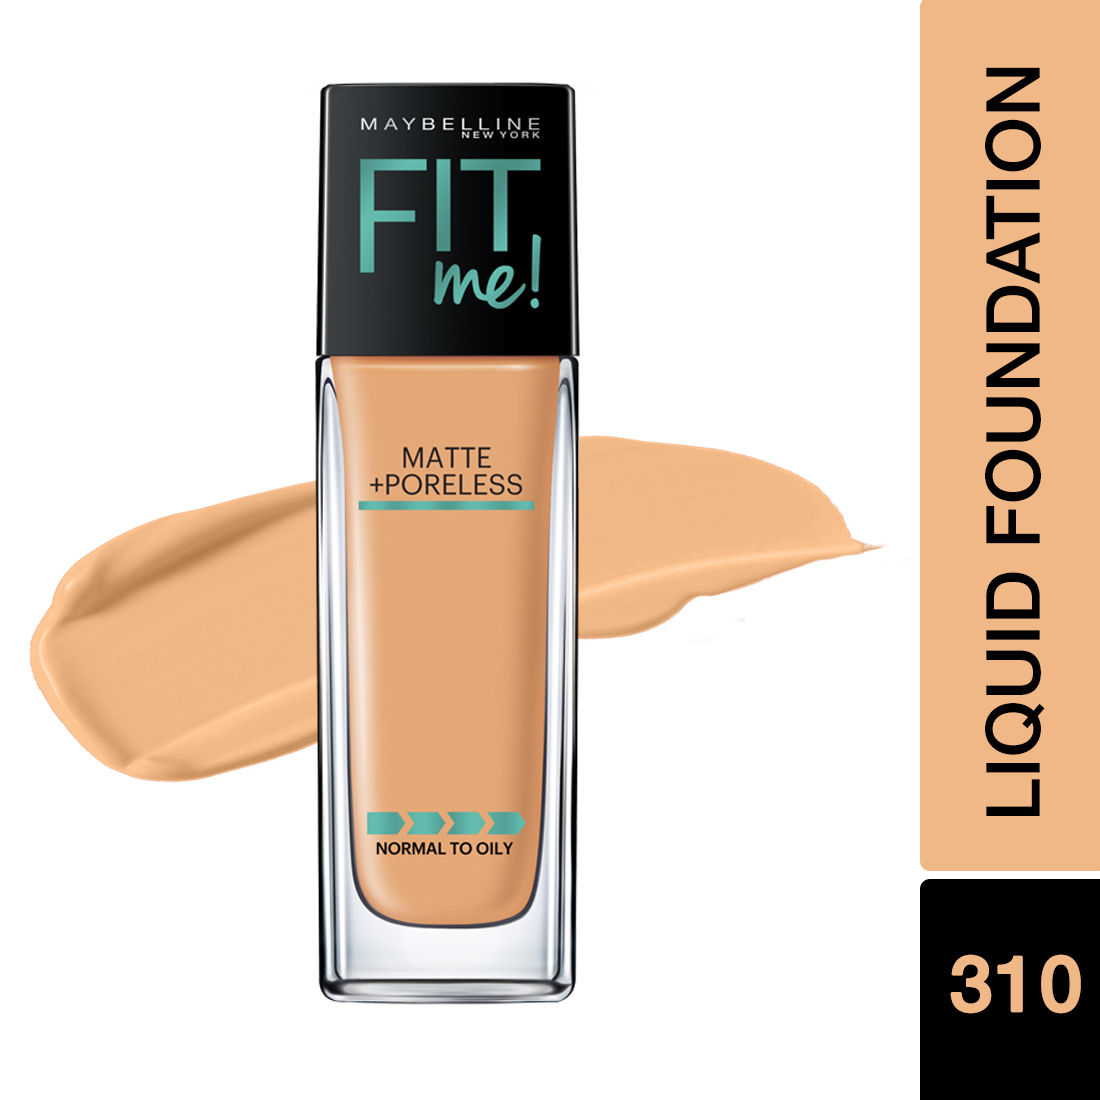 Maybelline New York Fit Me Matte Poreless Liquid Foundation With Pump Buy Maybelline New York Fit Me Matte Poreless Liquid Foundation With Pump Online At Best Price In India Nykaa